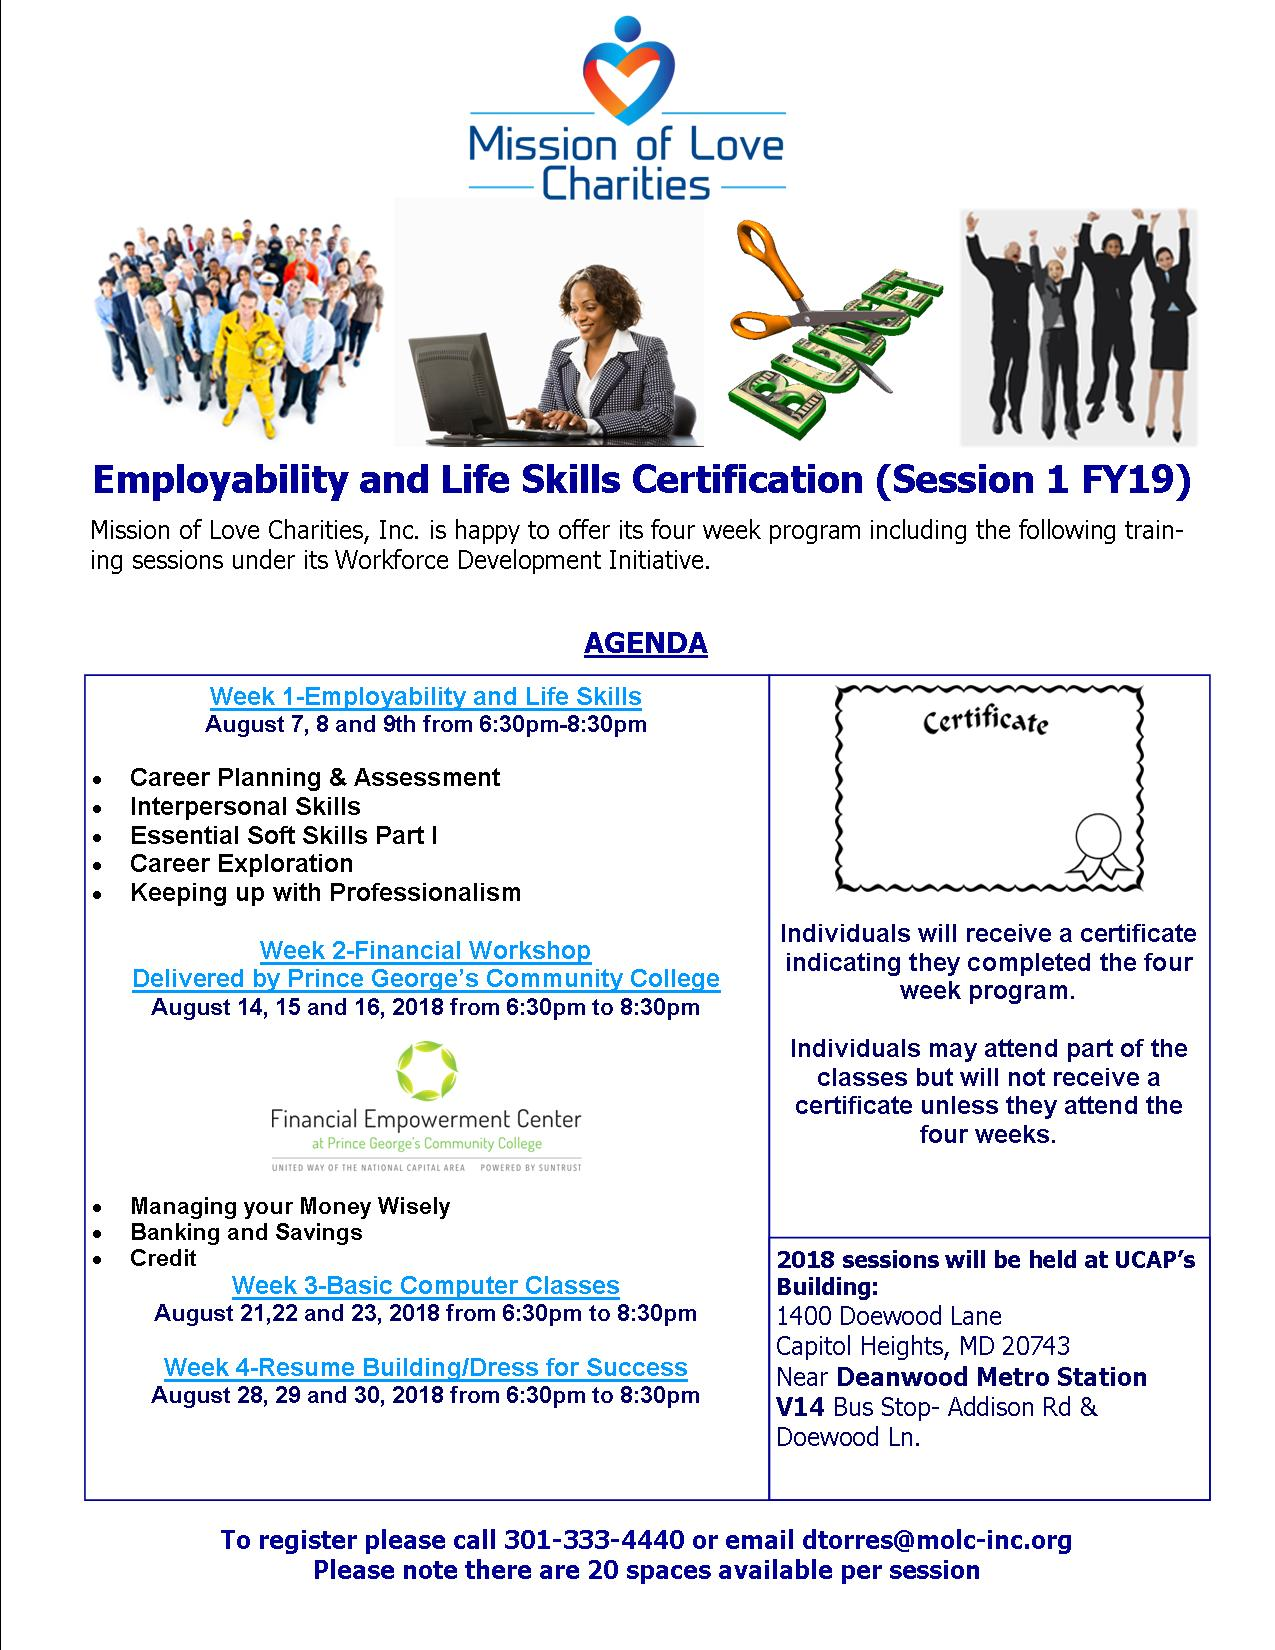 Employability and Life Skills Certification Session I FY19.jpg